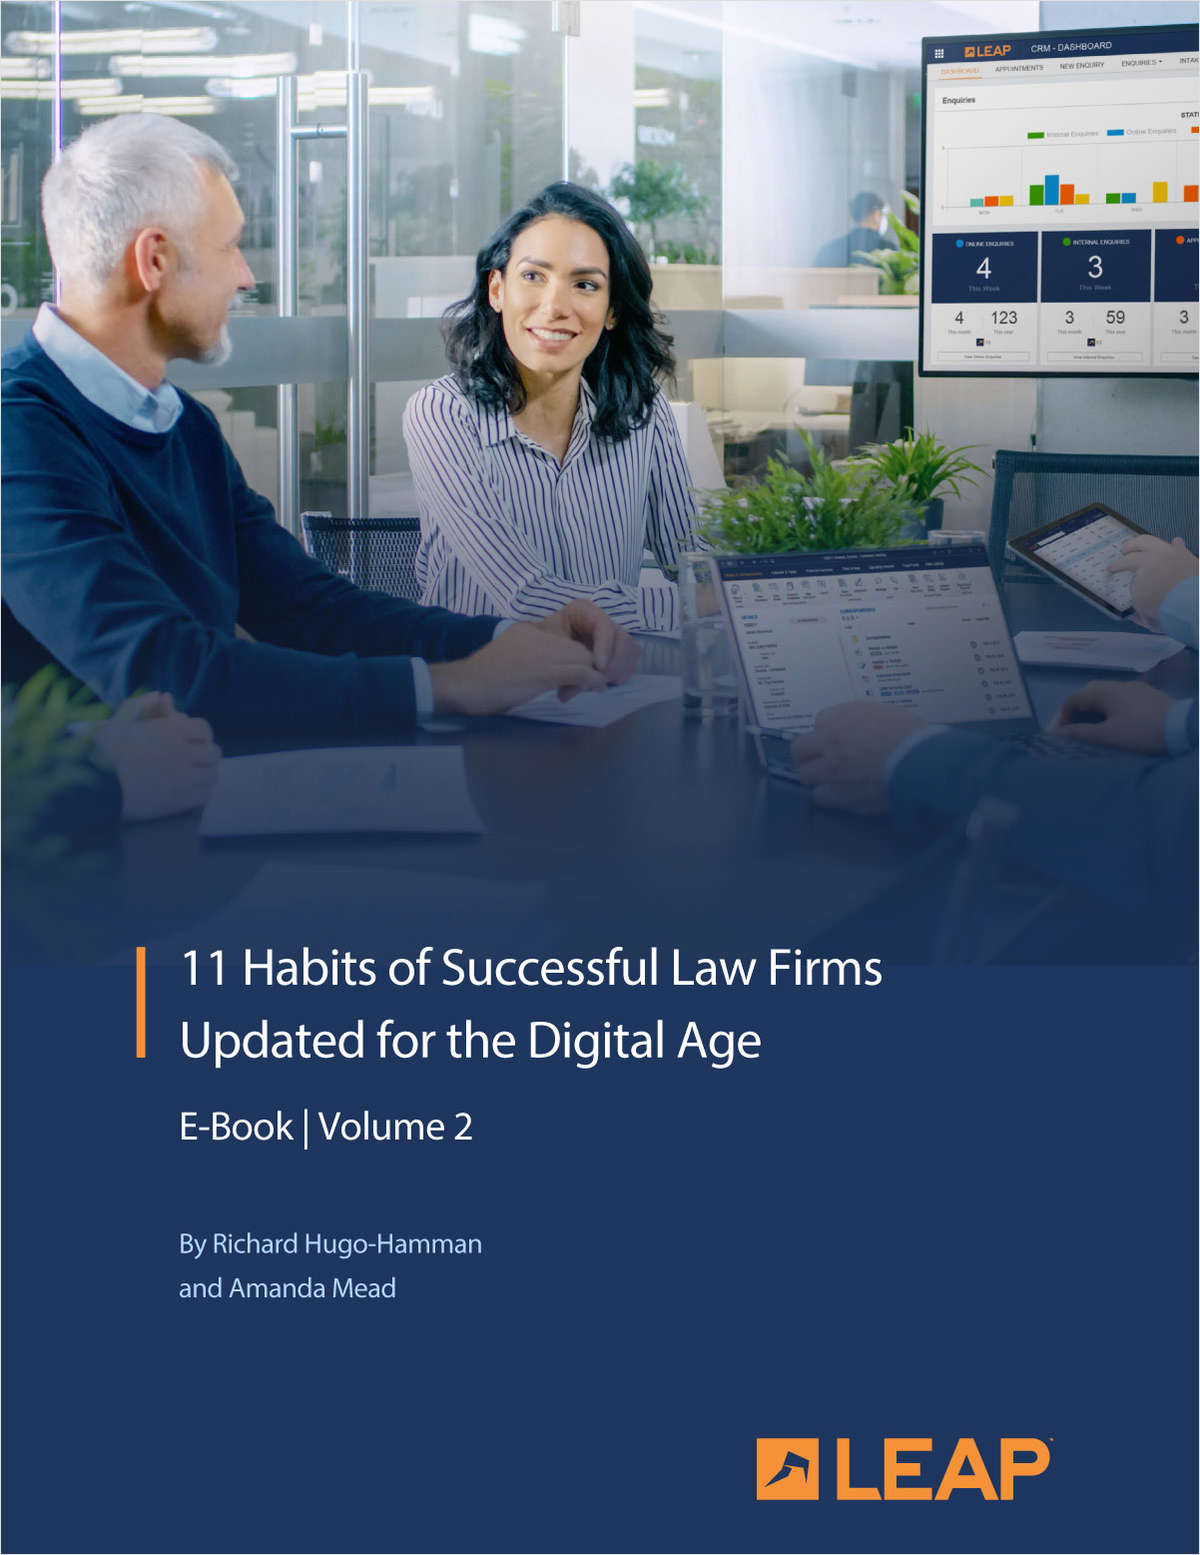 11 Habits of Successful Law Firms - Updated for the Digital Age